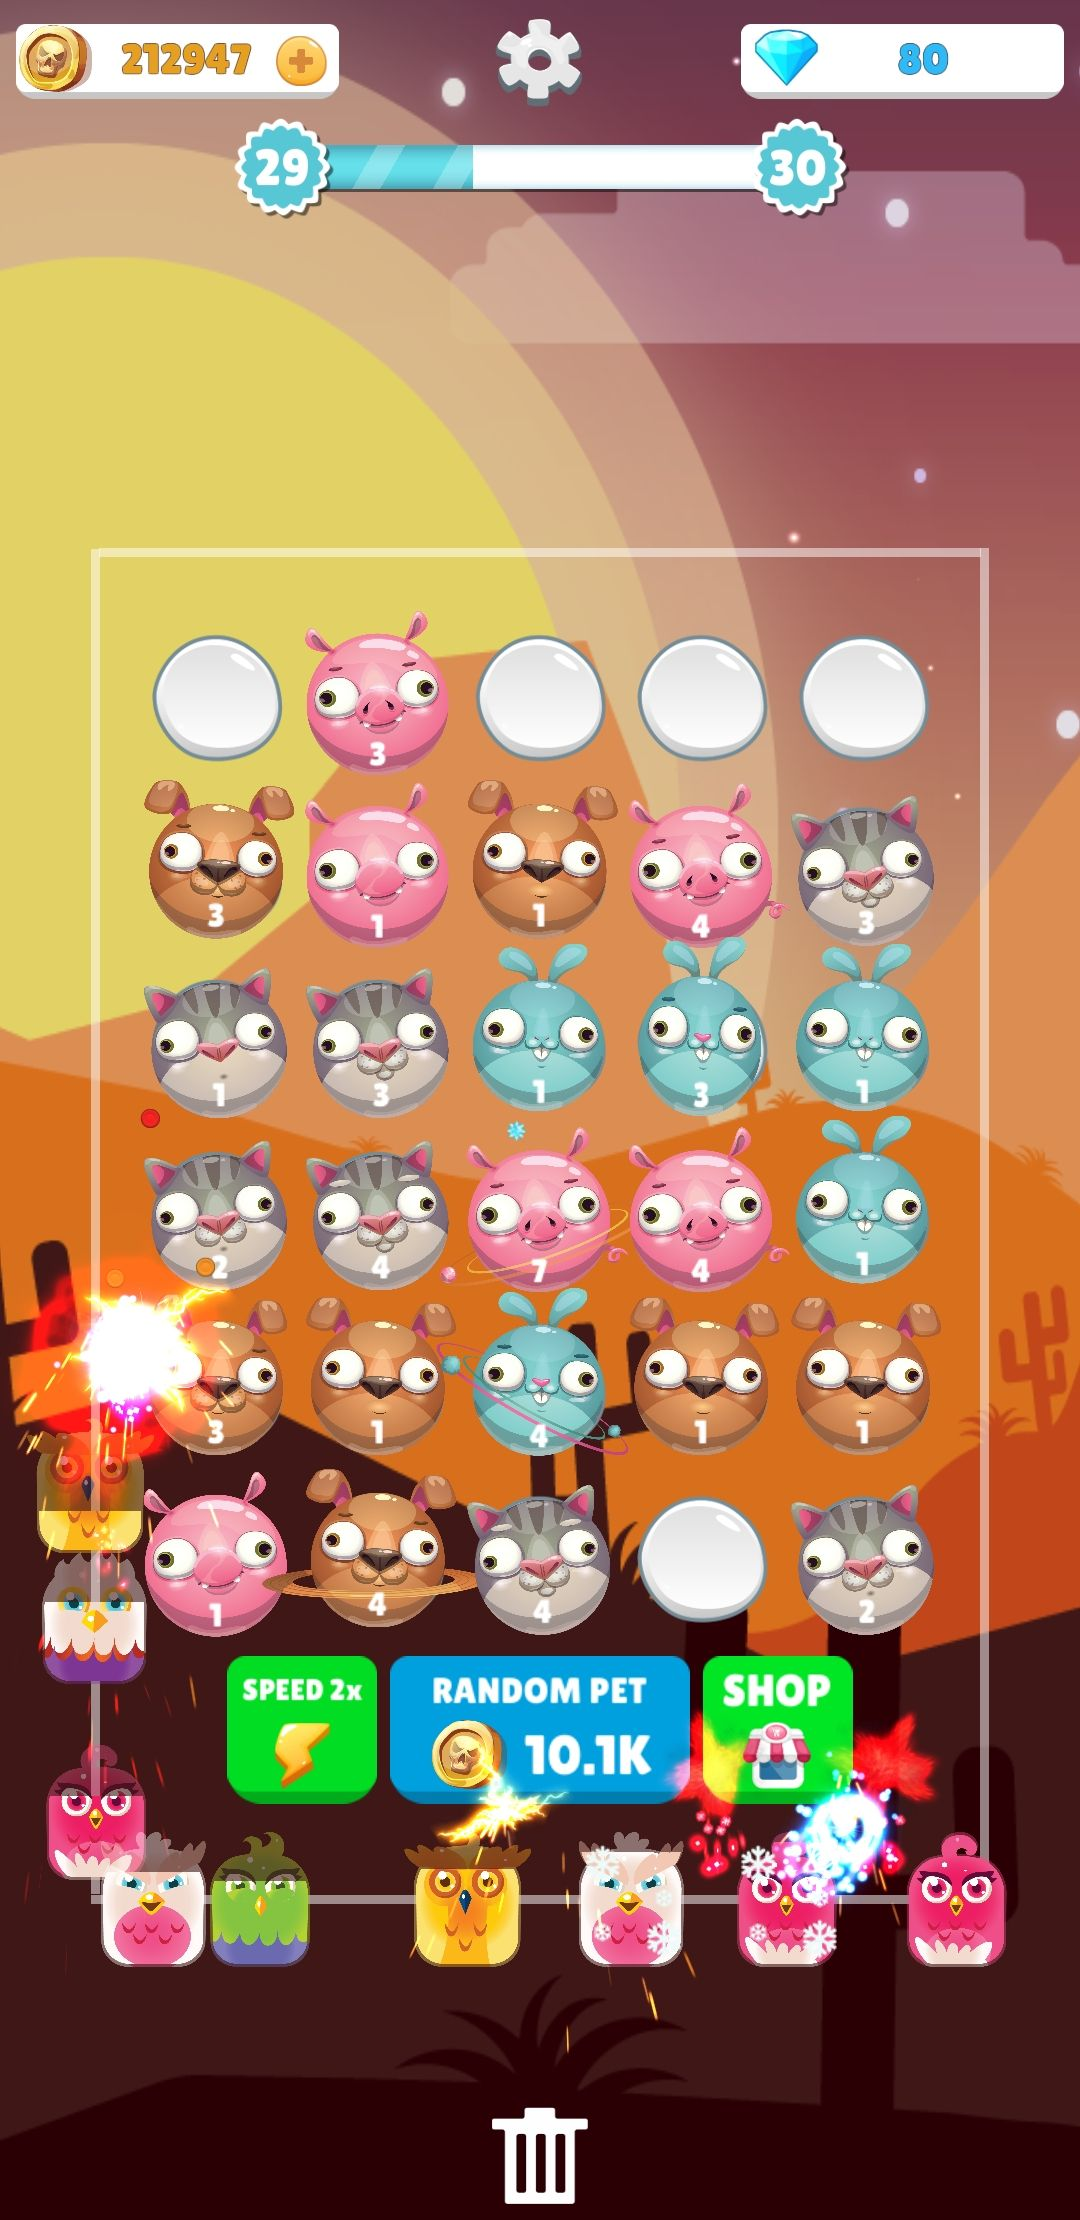 Merge Animals - Tower Defense Unity Project Screenshot 5